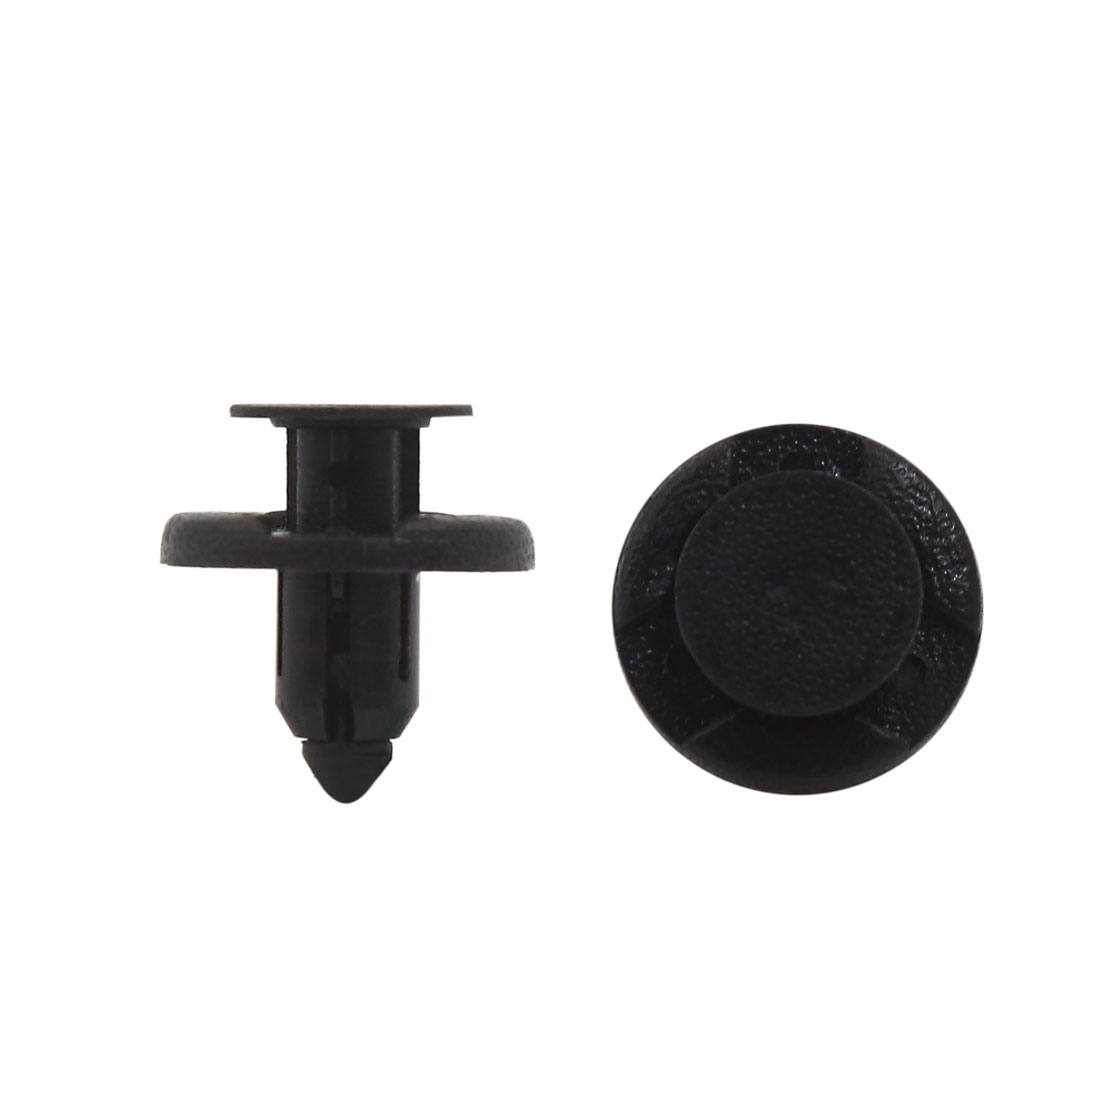 40 Pcs 8mm Dia Hole Plastic Rivets Fastener Push Clips Black for Car Auto Fender - image 2 of 2